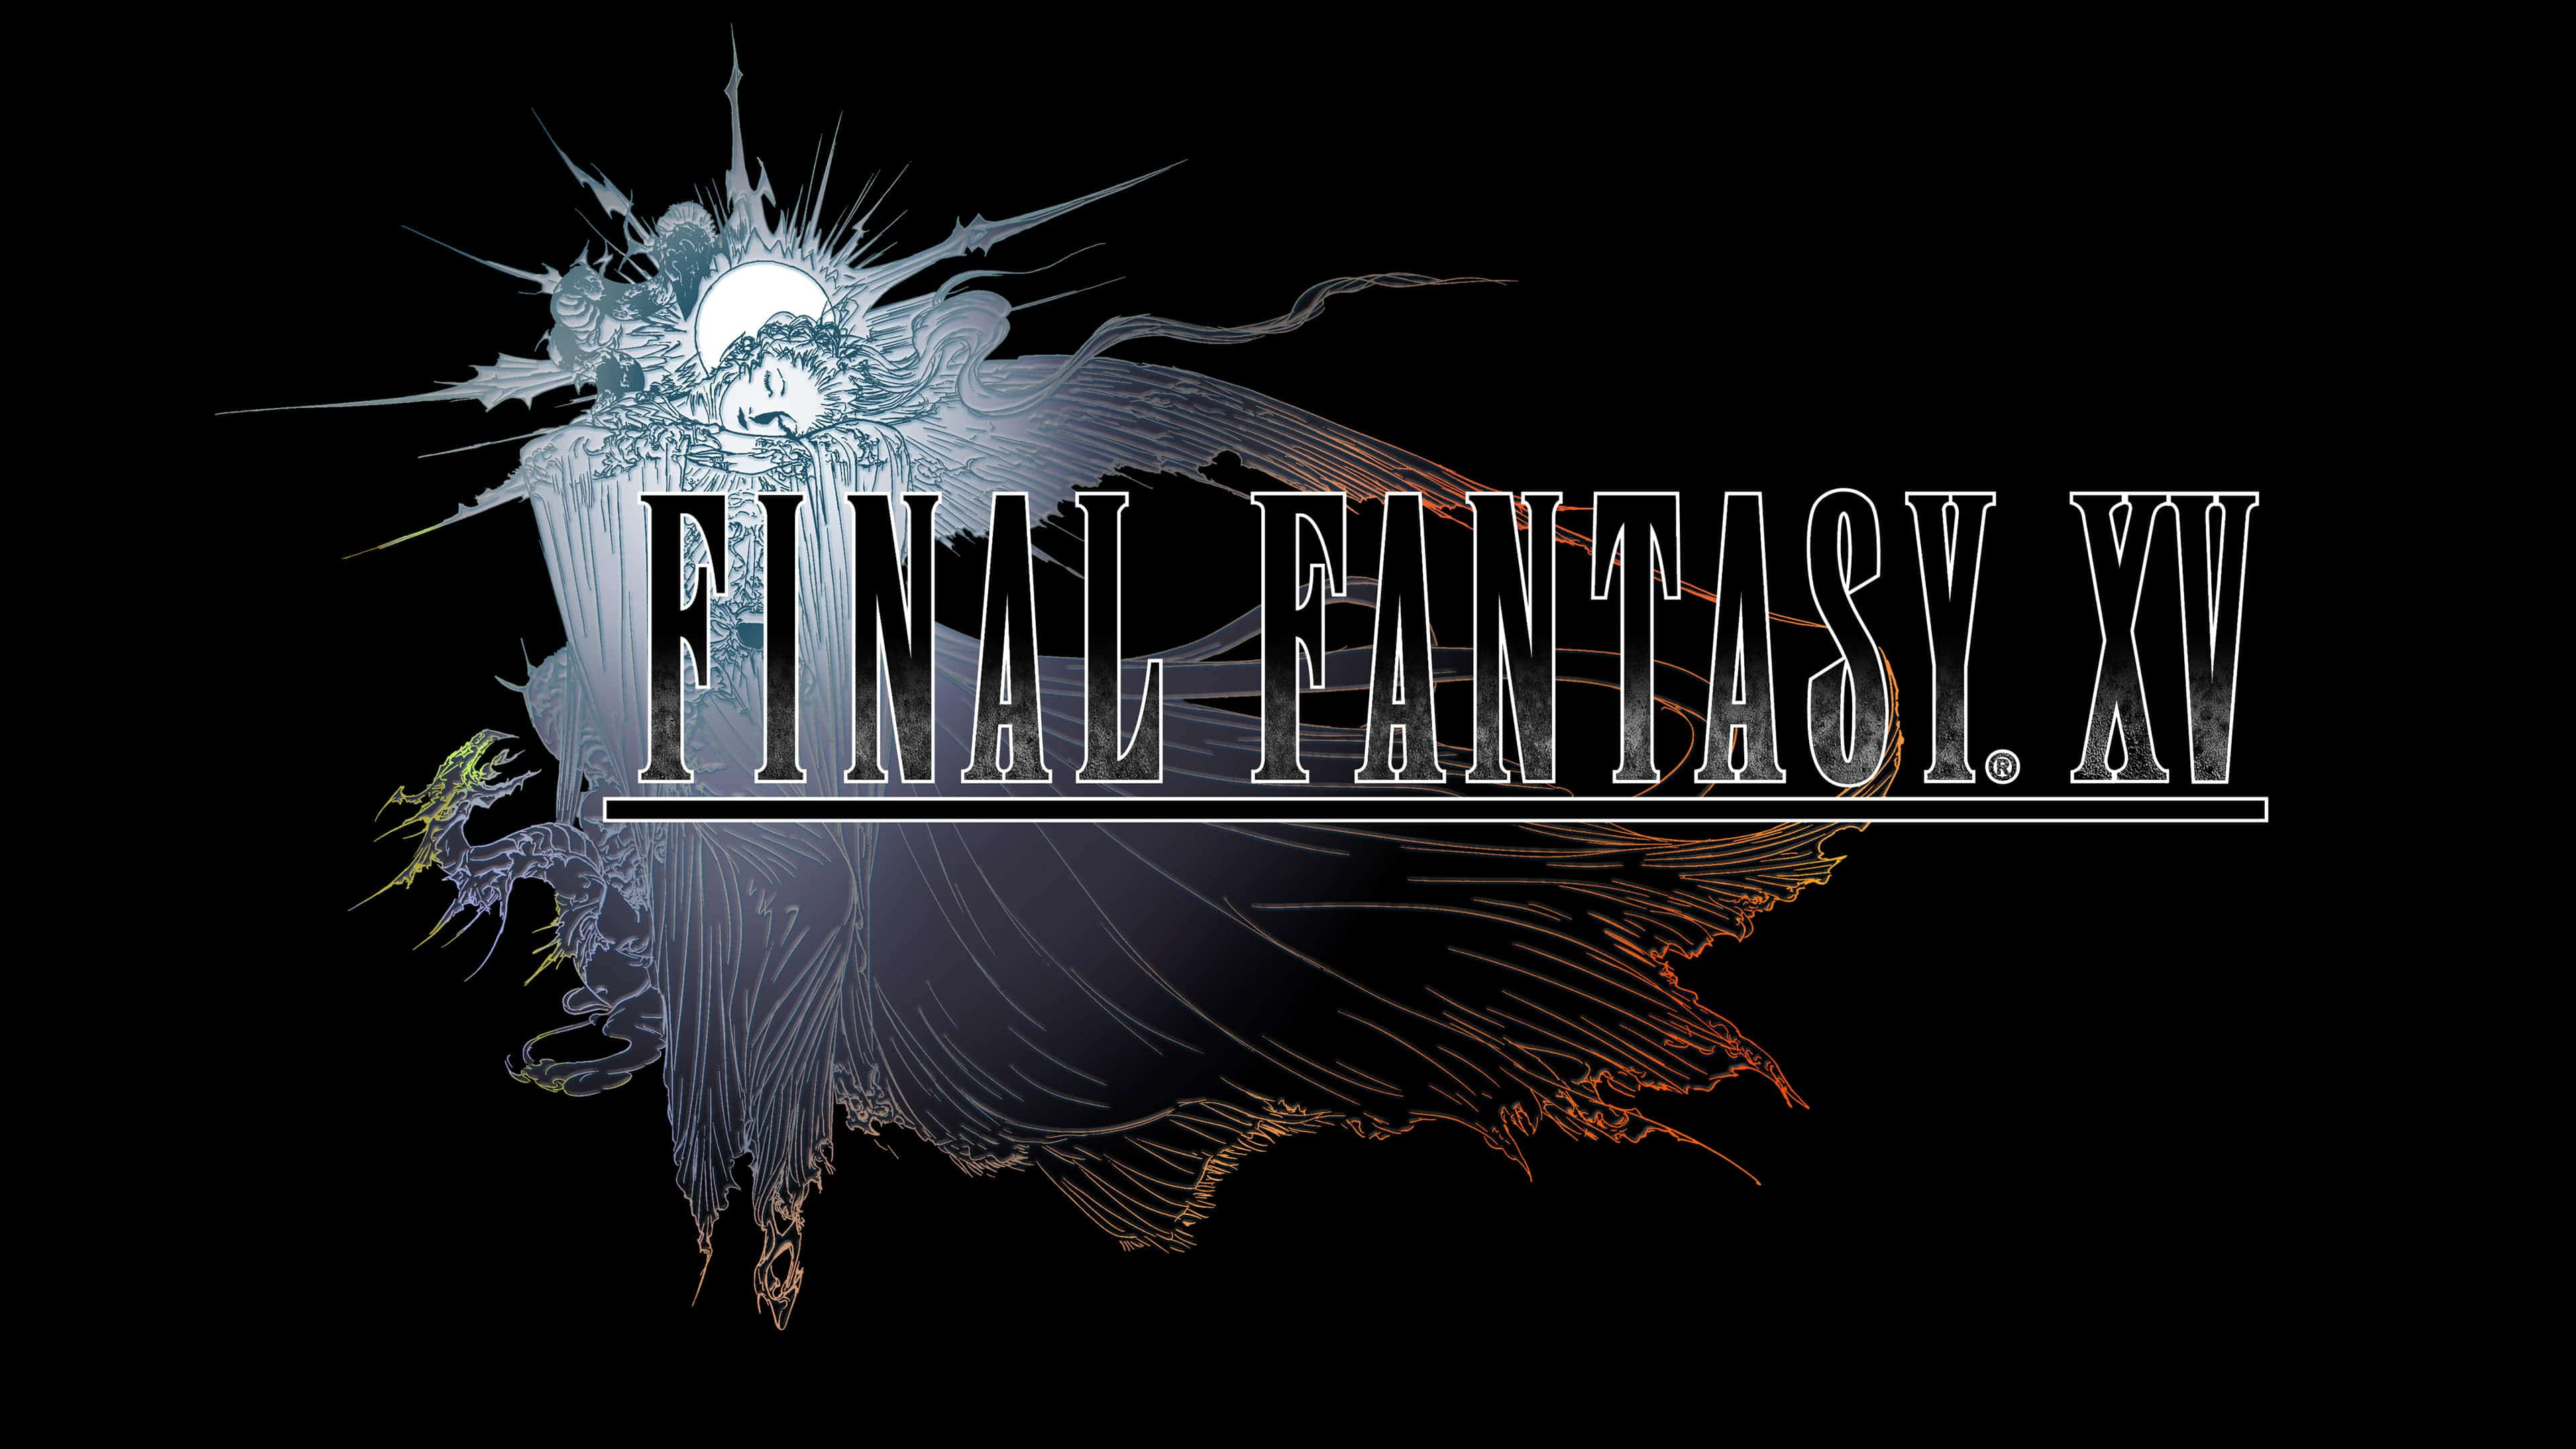 4k Final Fantasy Xv Hd Games 4k Wallpapers Images: Final Fantasy XV Logo UHD 4K Wallpaper